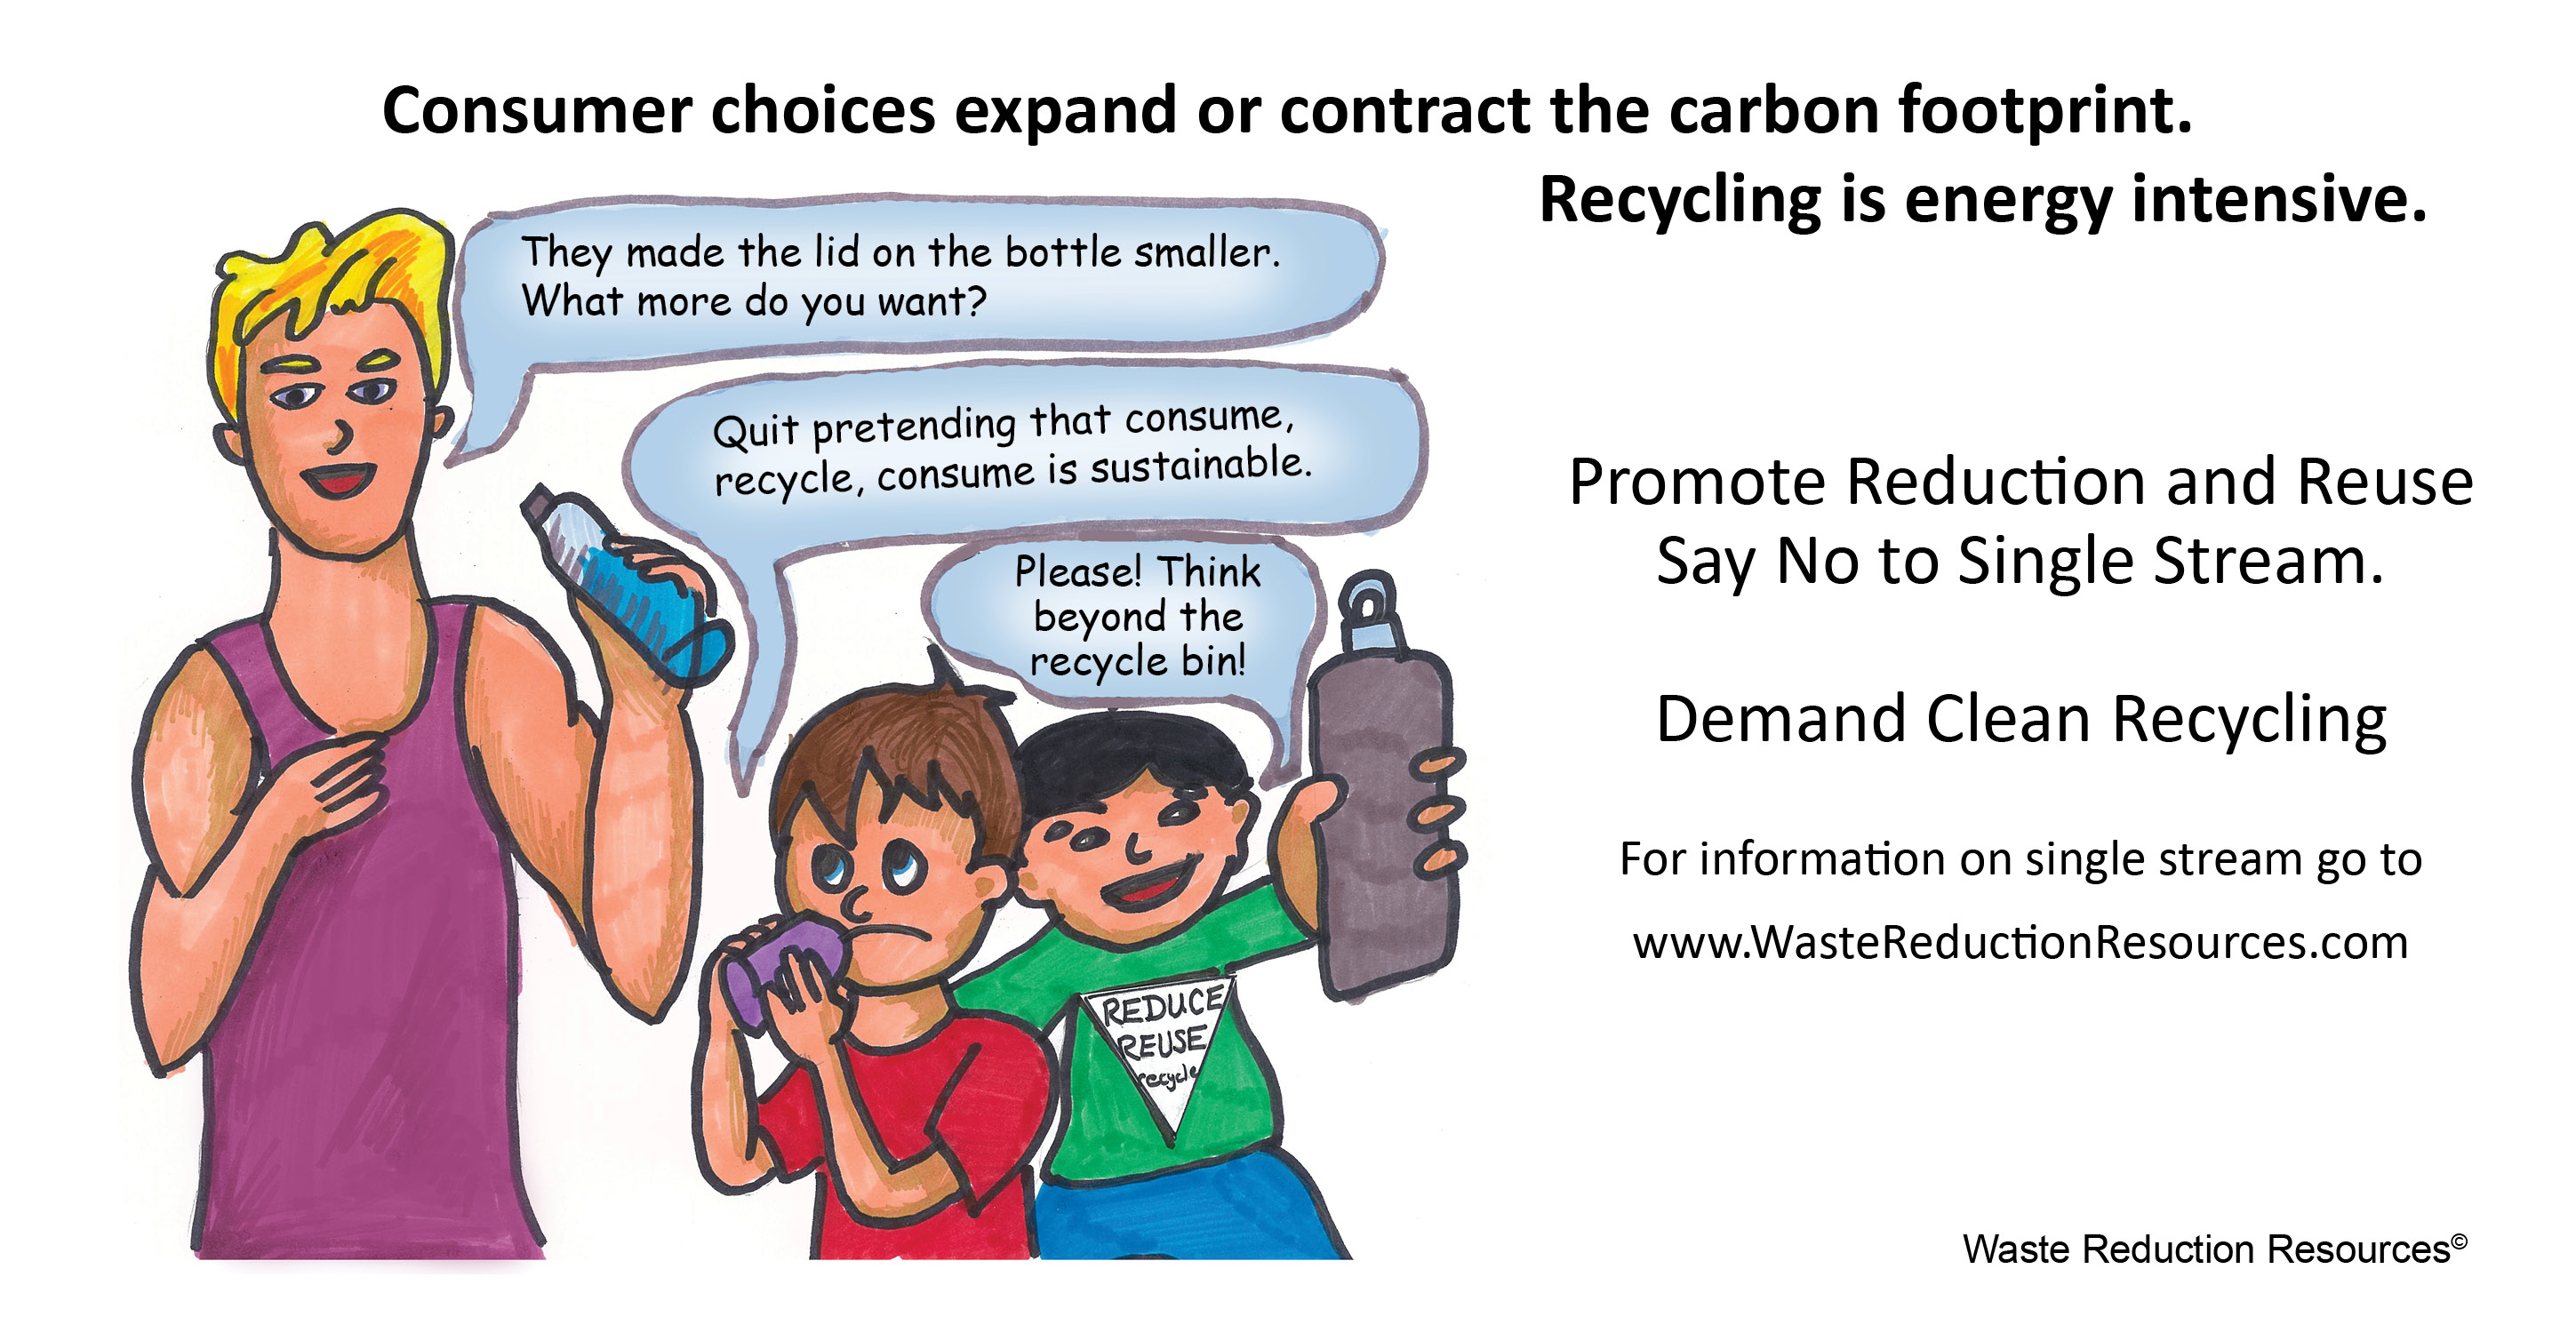 Consumer Choices Expand or Contract the Carbon Footprint Recycling is Energy Intensive